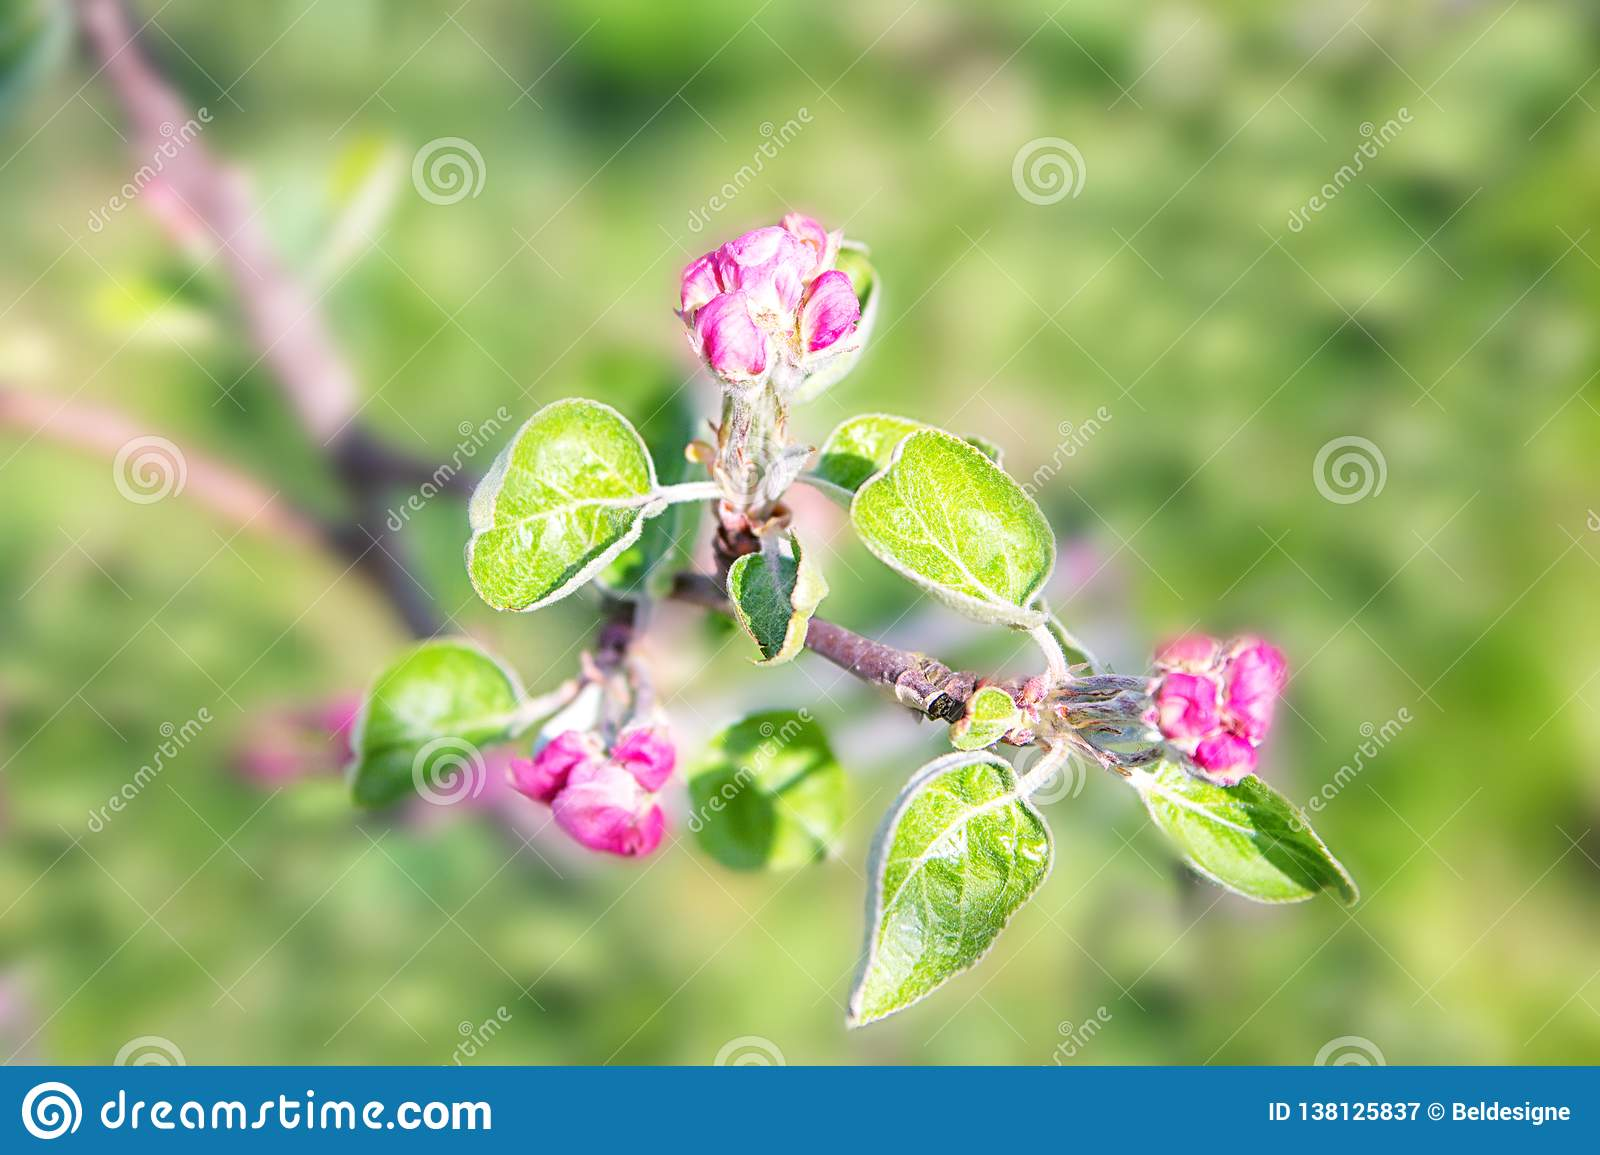 Blossoming of the apple tree in spring time with pink beautiful flowers. Macro image with copy space. Natural seasonal background